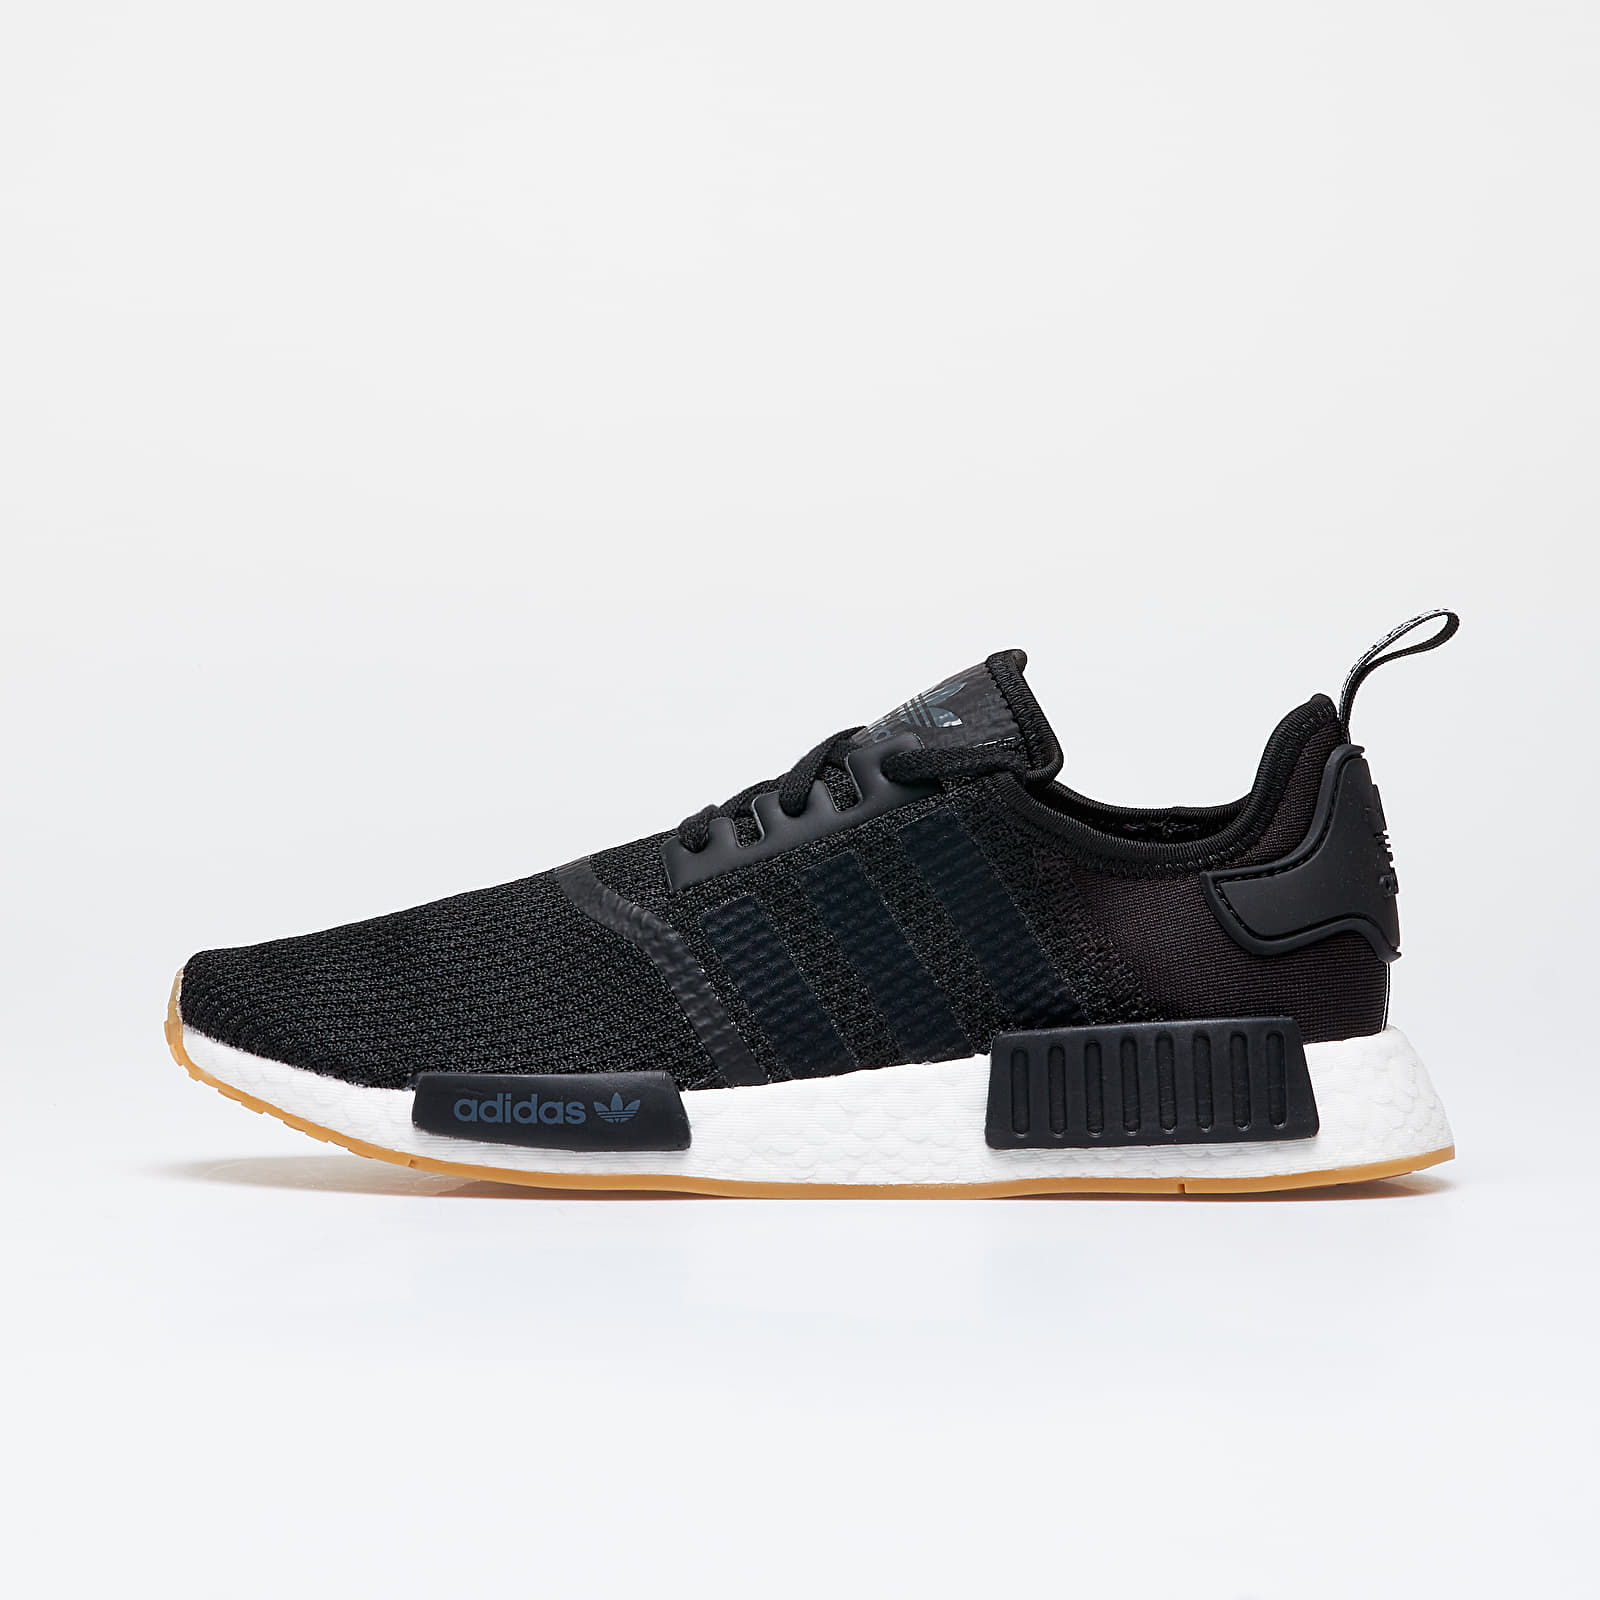 Men's shoes adidas NMD_R1 Core Black/ Core Black/ Gum 3